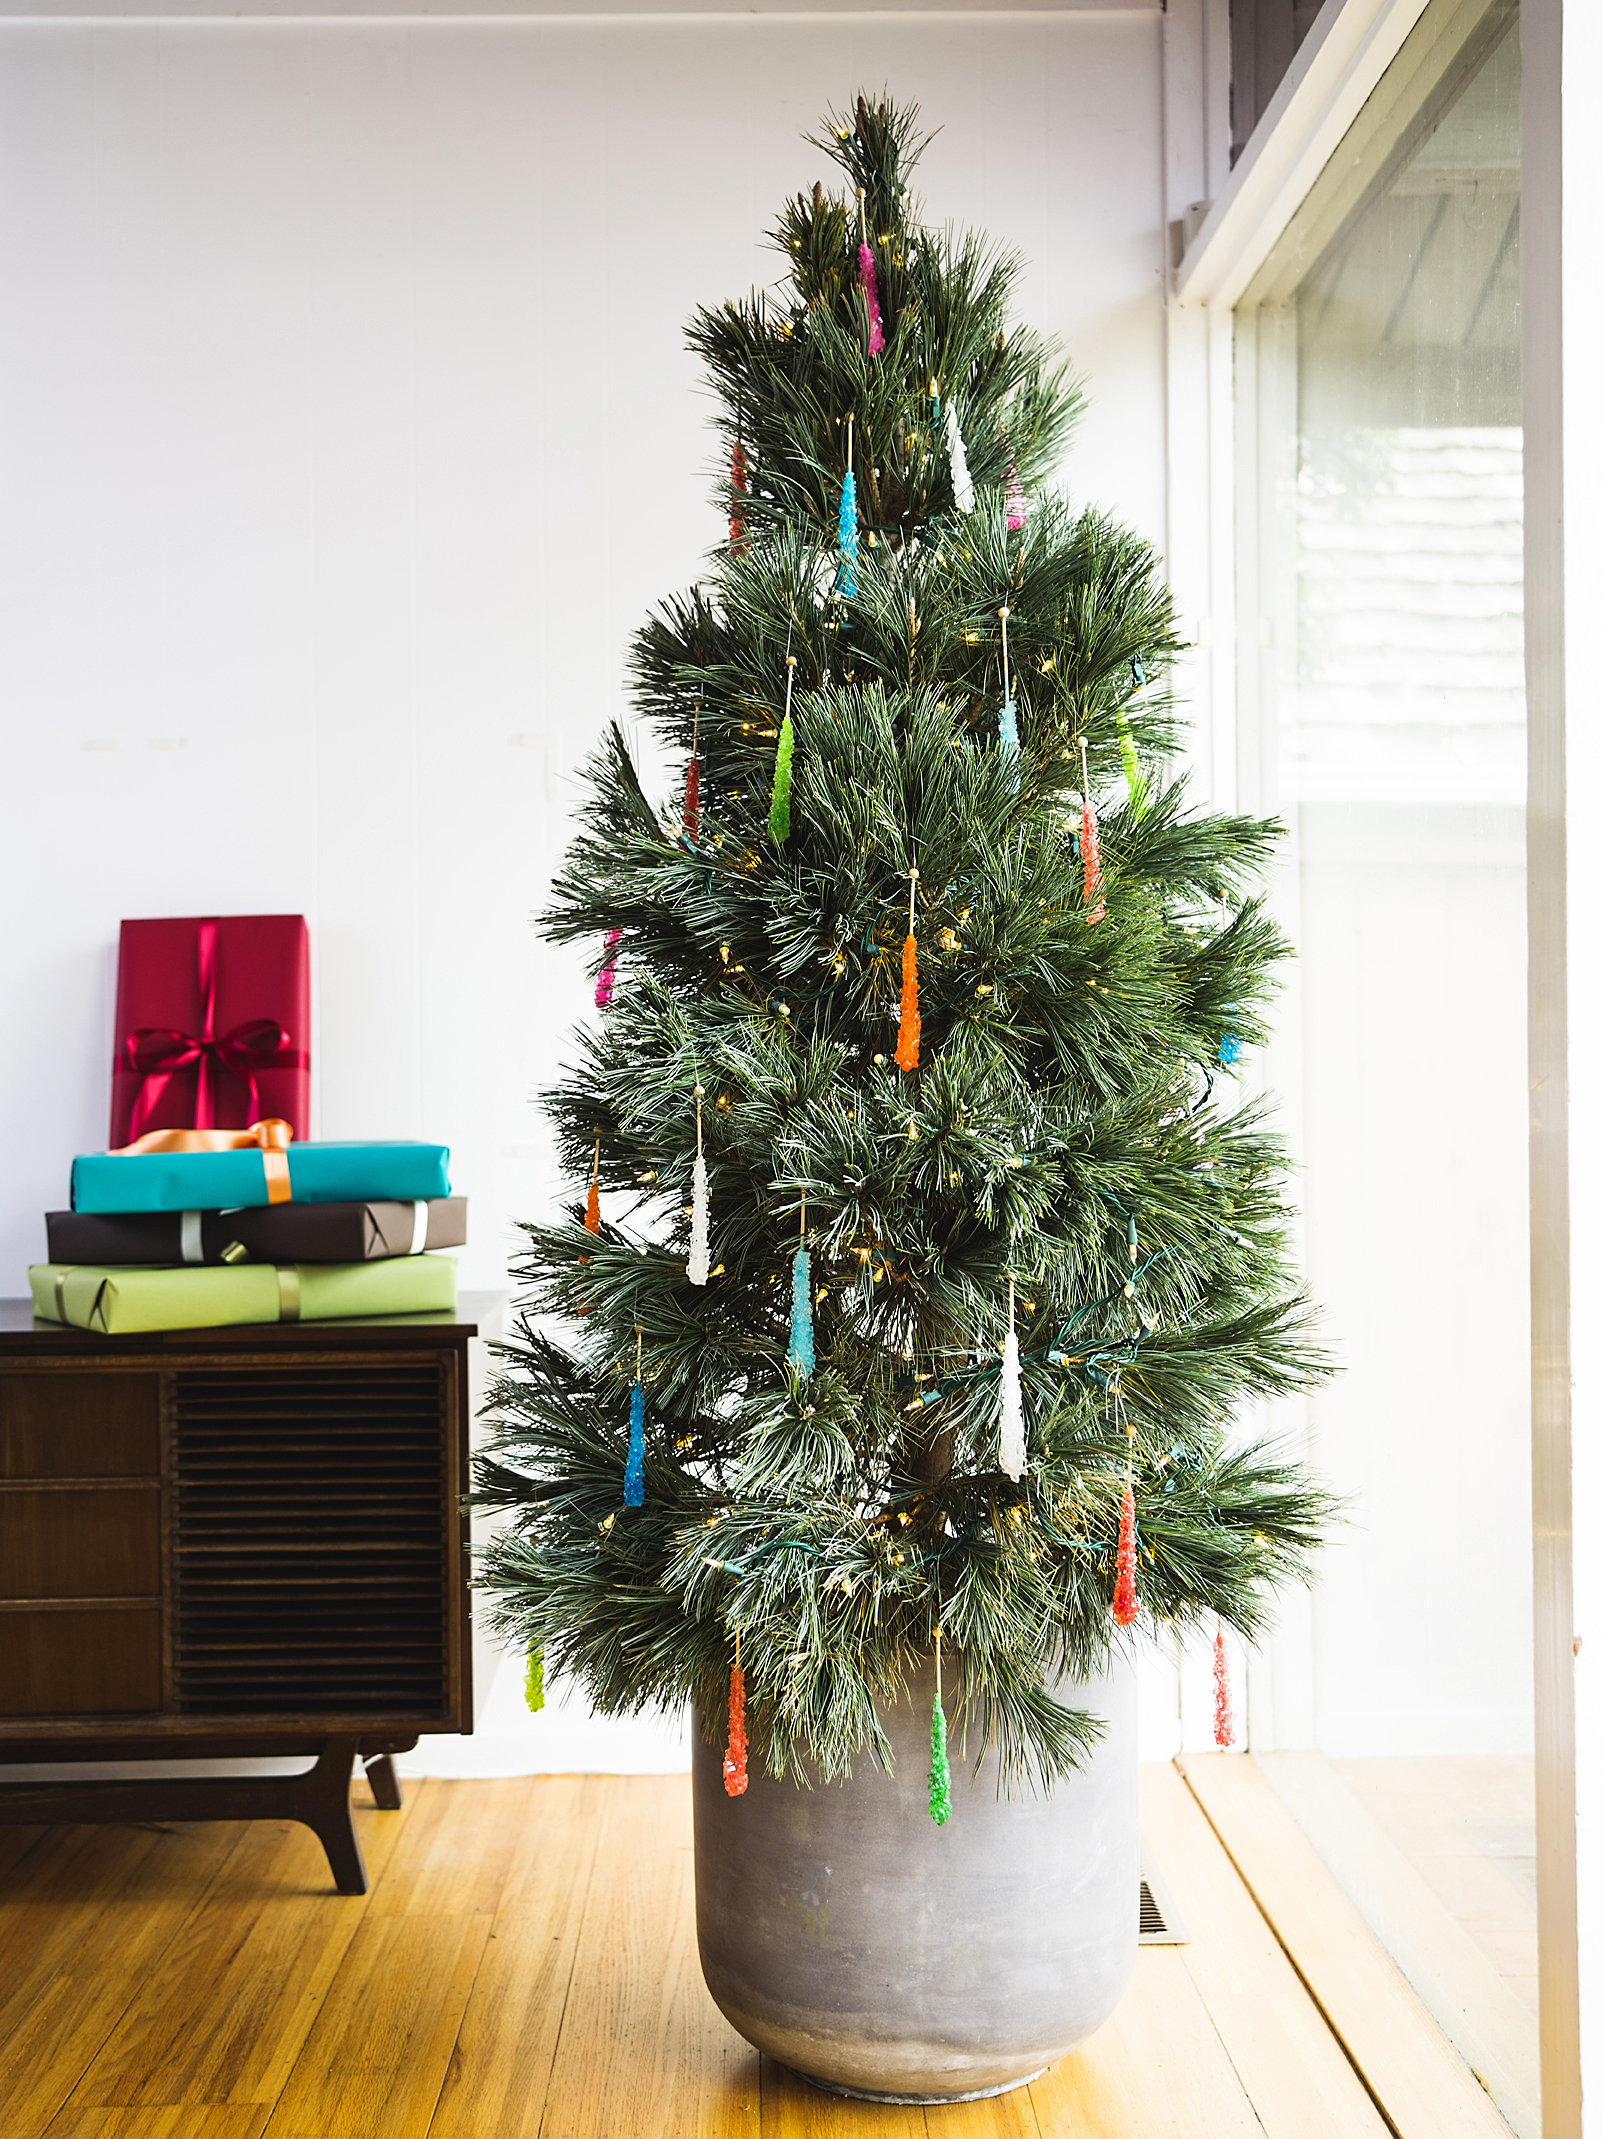 How To Take Care Of A Real Christmas Tree.How To Care For A Living Christmas Tree Sunset Magazine